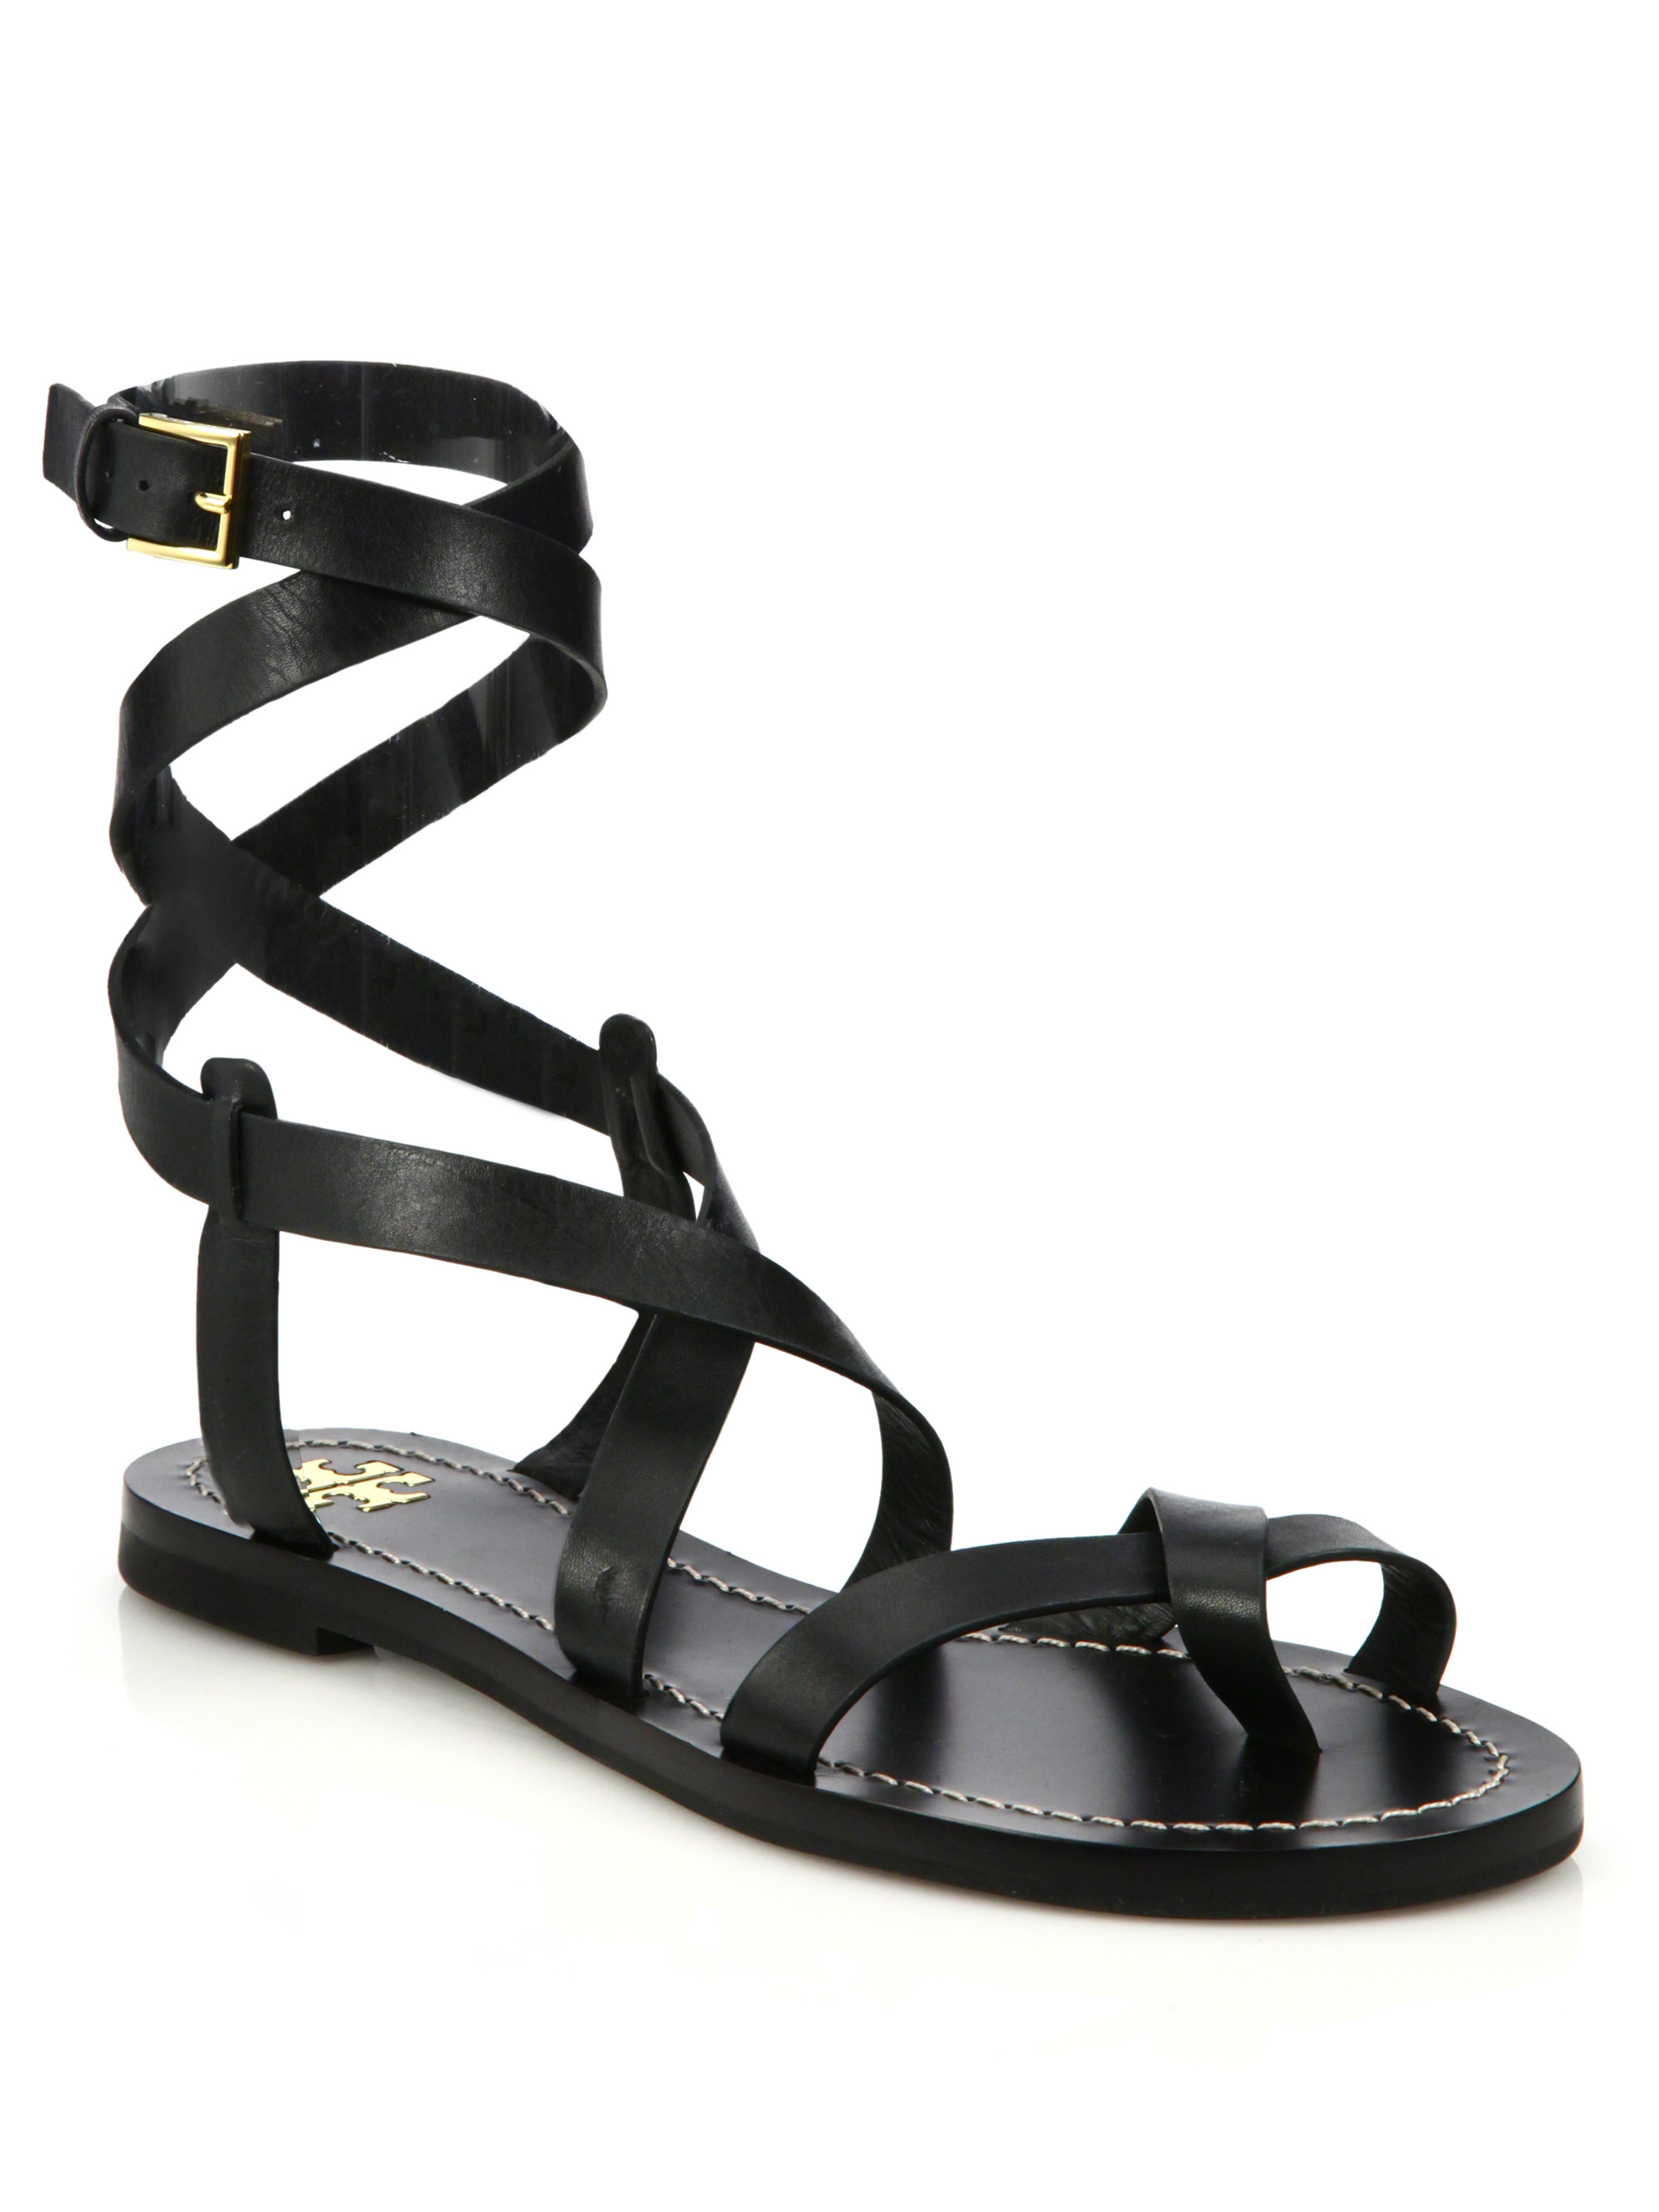 8fa648b401c5 Lyst - Tory Burch Patos Crisscross Leather Sandal in Black